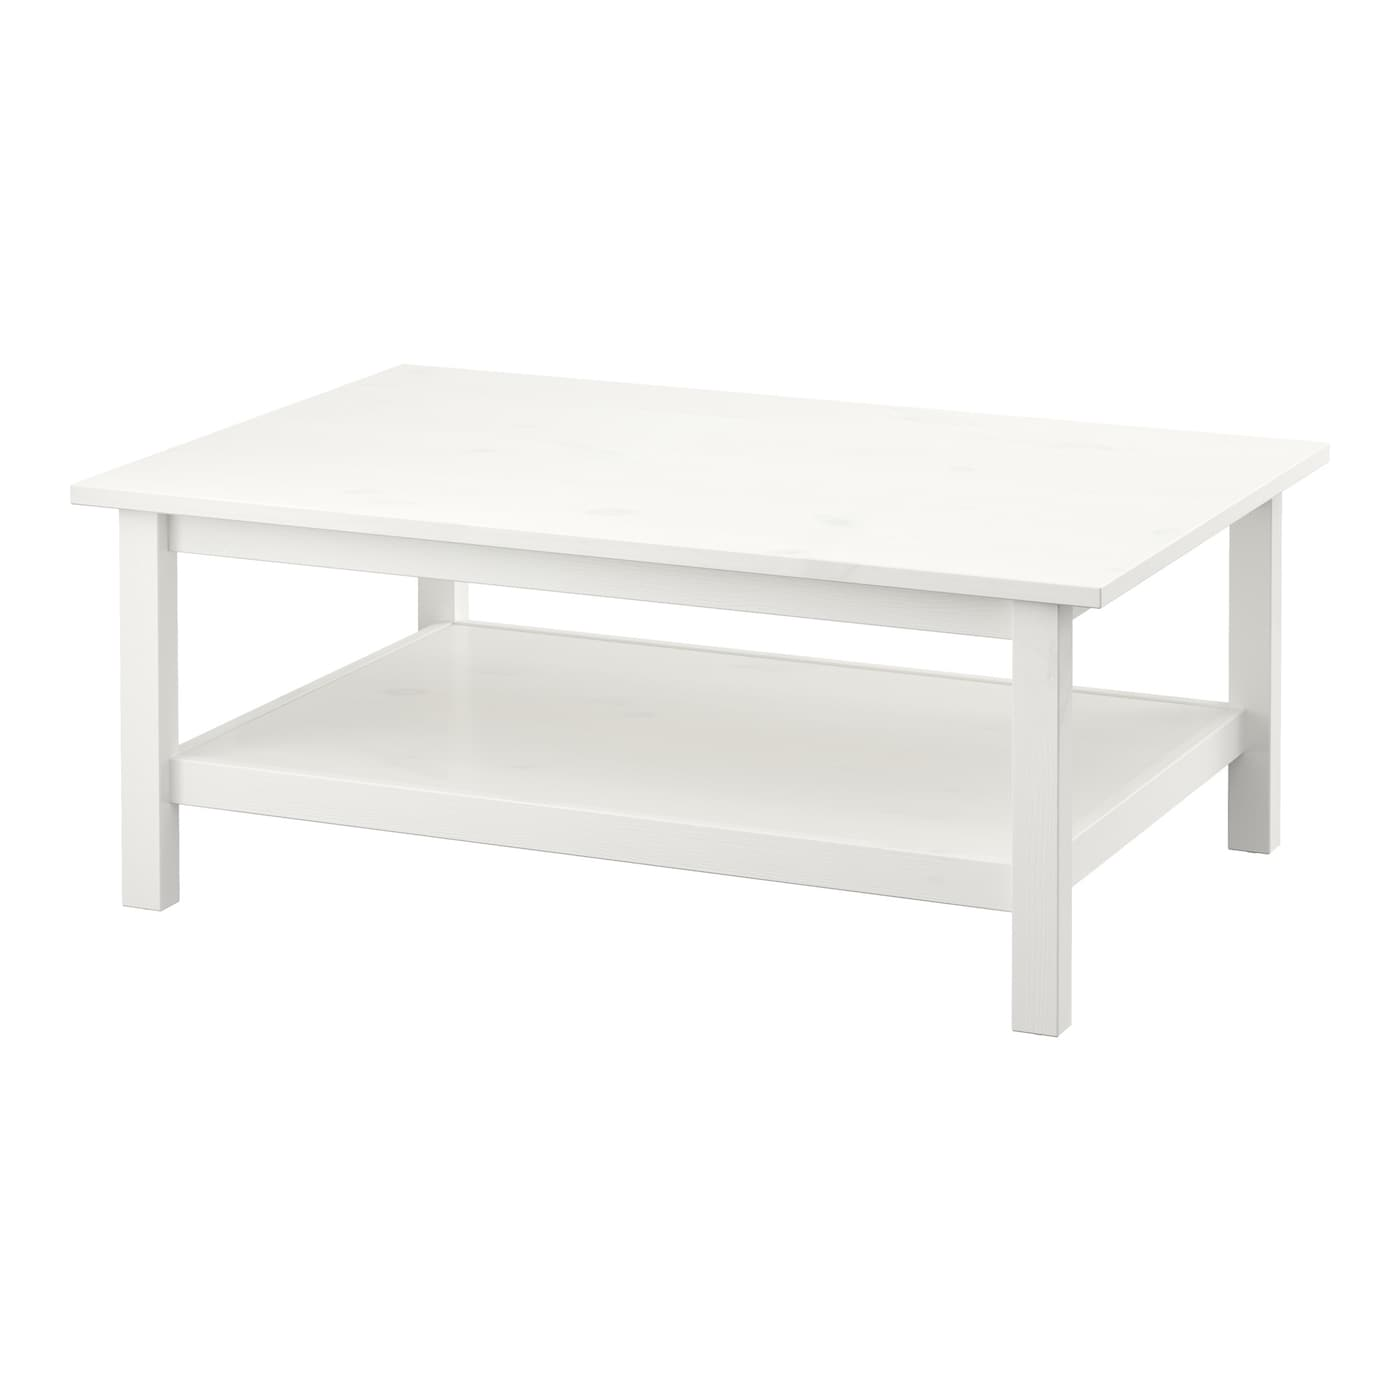 Hemnes Coffee Table Black Brown 90x90 Cm: HEMNES Coffee Table White Stain 118 X 75 Cm